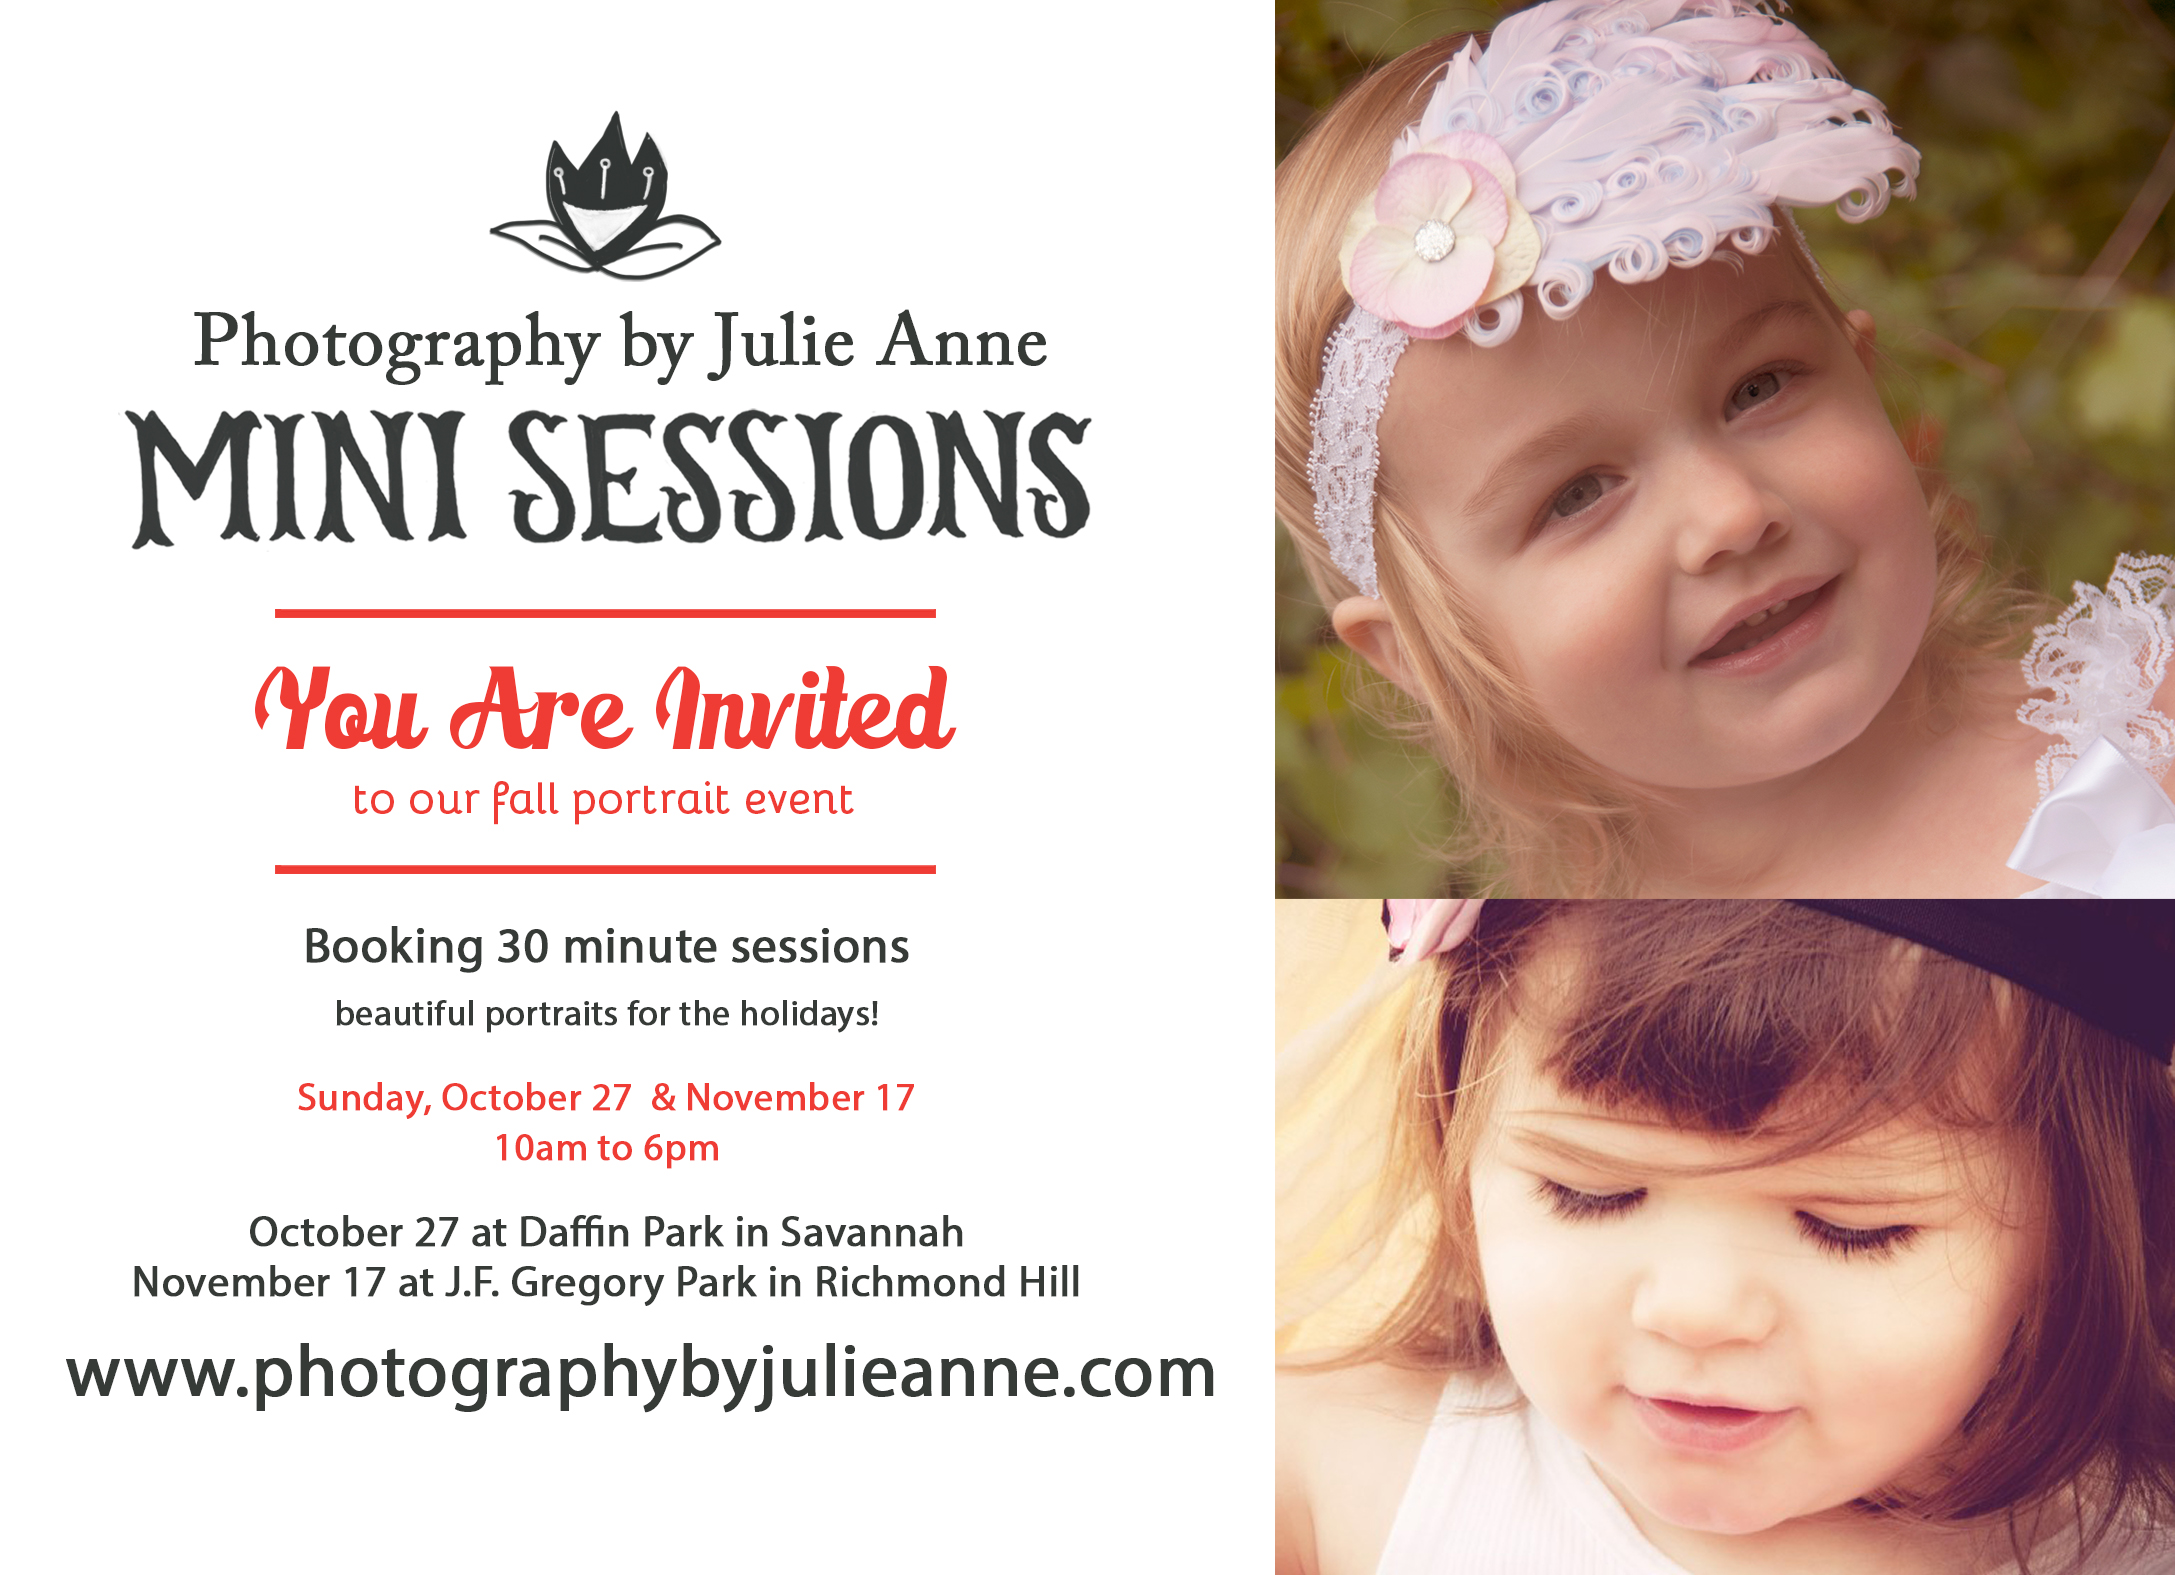 Photography by Julie Anne Fall Mini Sessions in Savannah